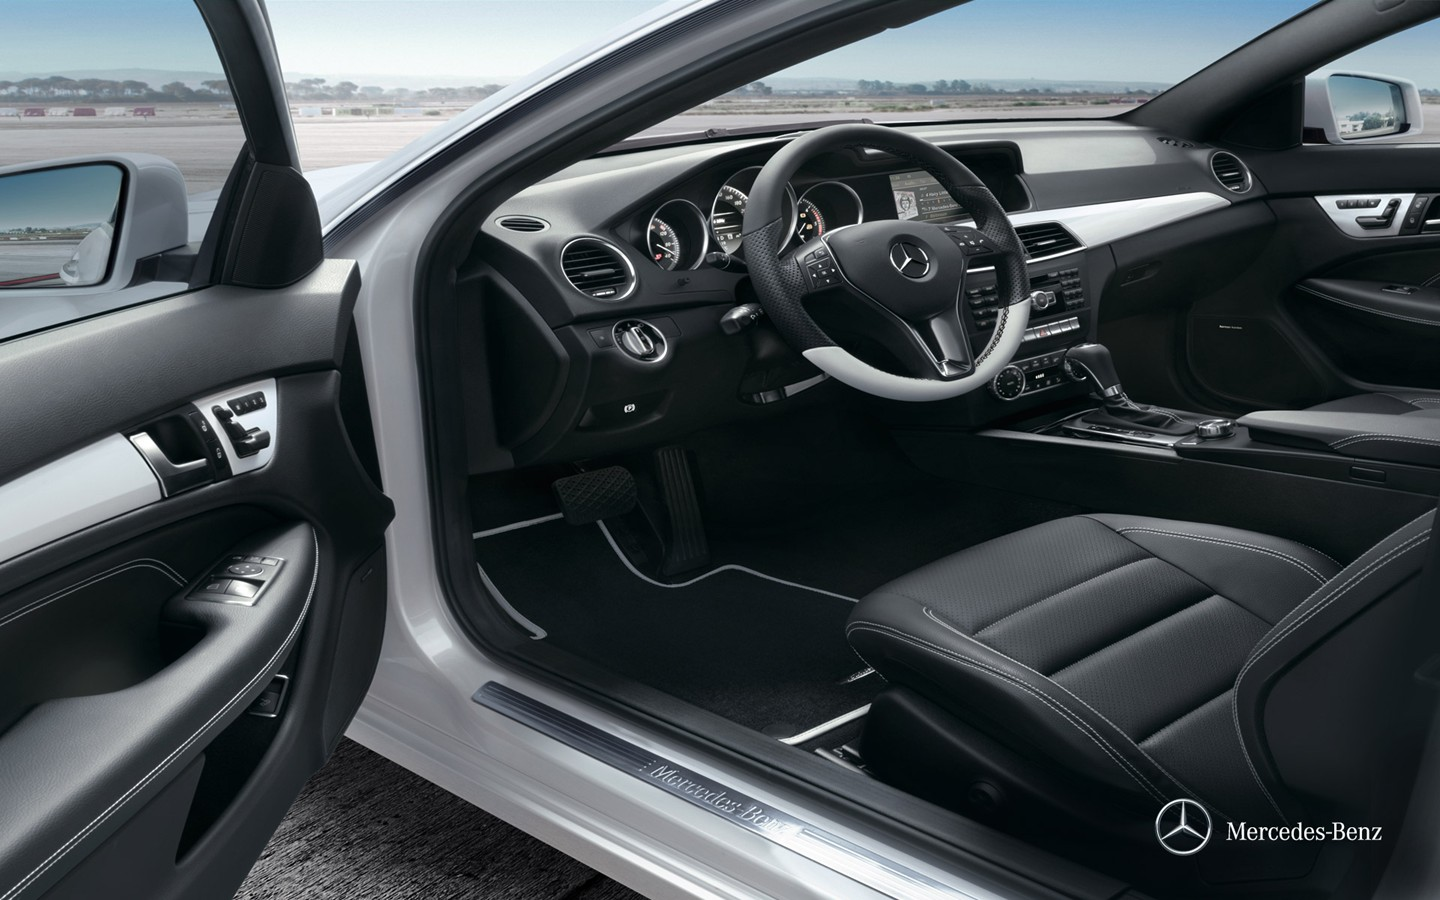 Mercedes-Benz C-Class Coupe two-door coupe wallpaper 30996